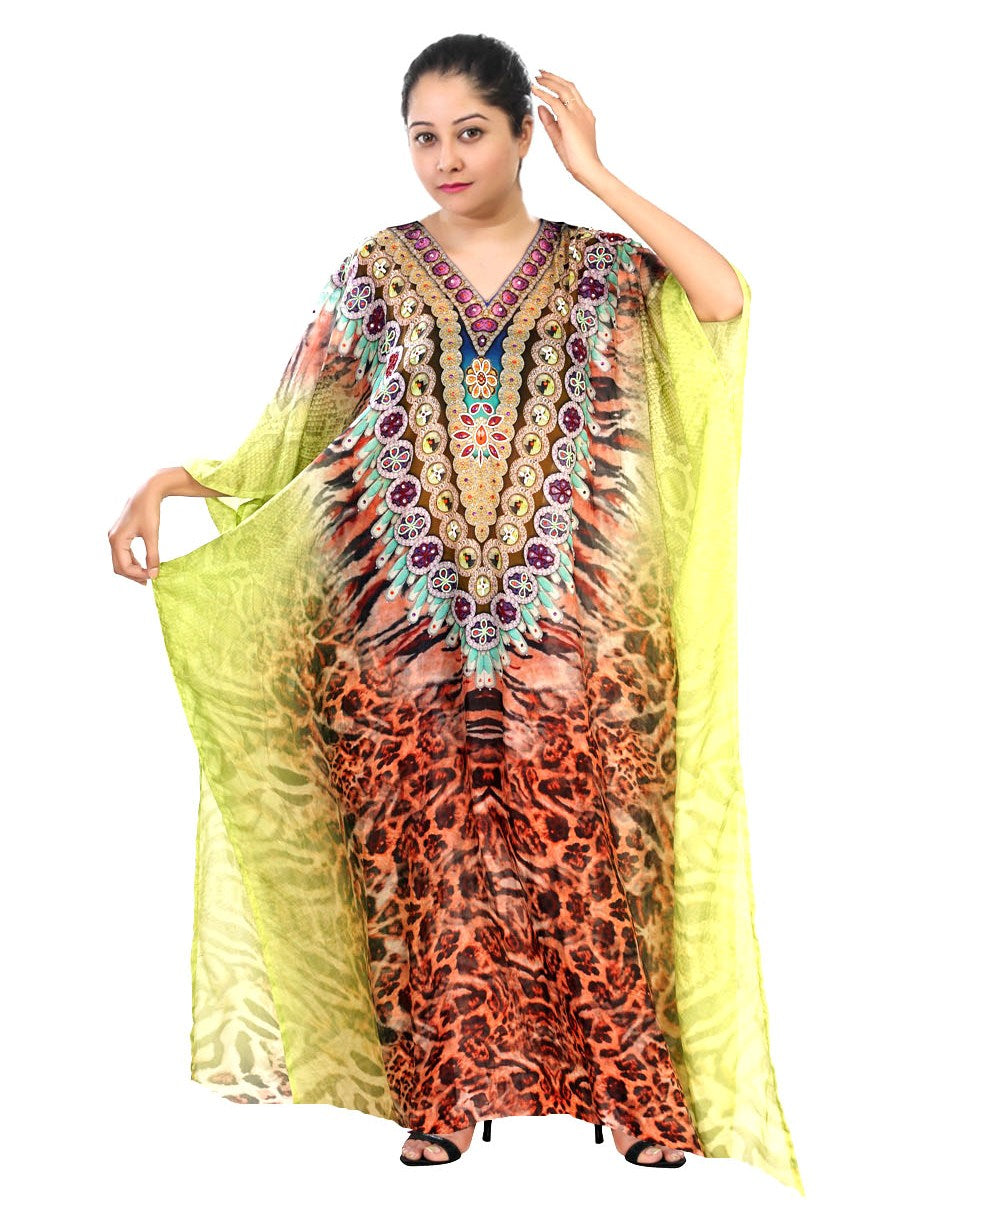 Animal Print kaftan Plus size sequin Designer Resort wear silk kaftans bikini kaftan for shorties women - Silk kaftan